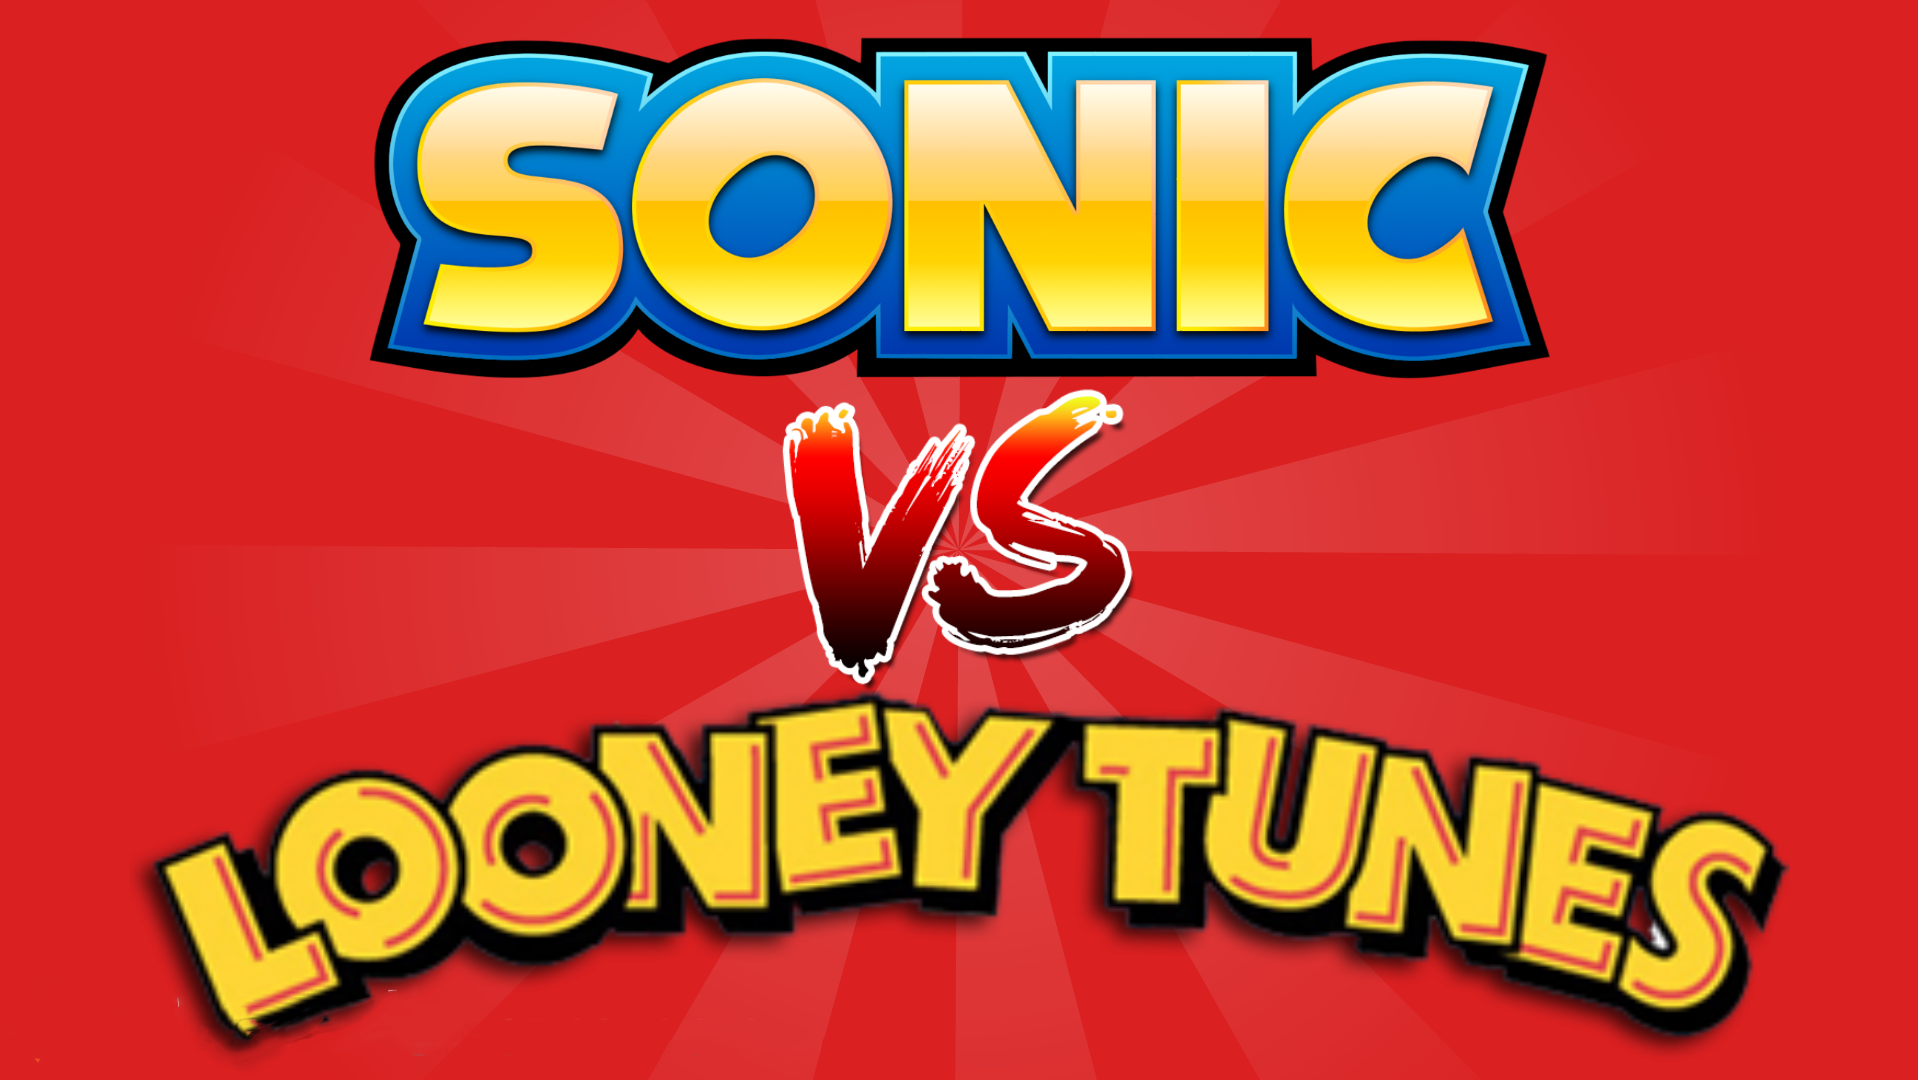 Sonic vs Looney Tunes